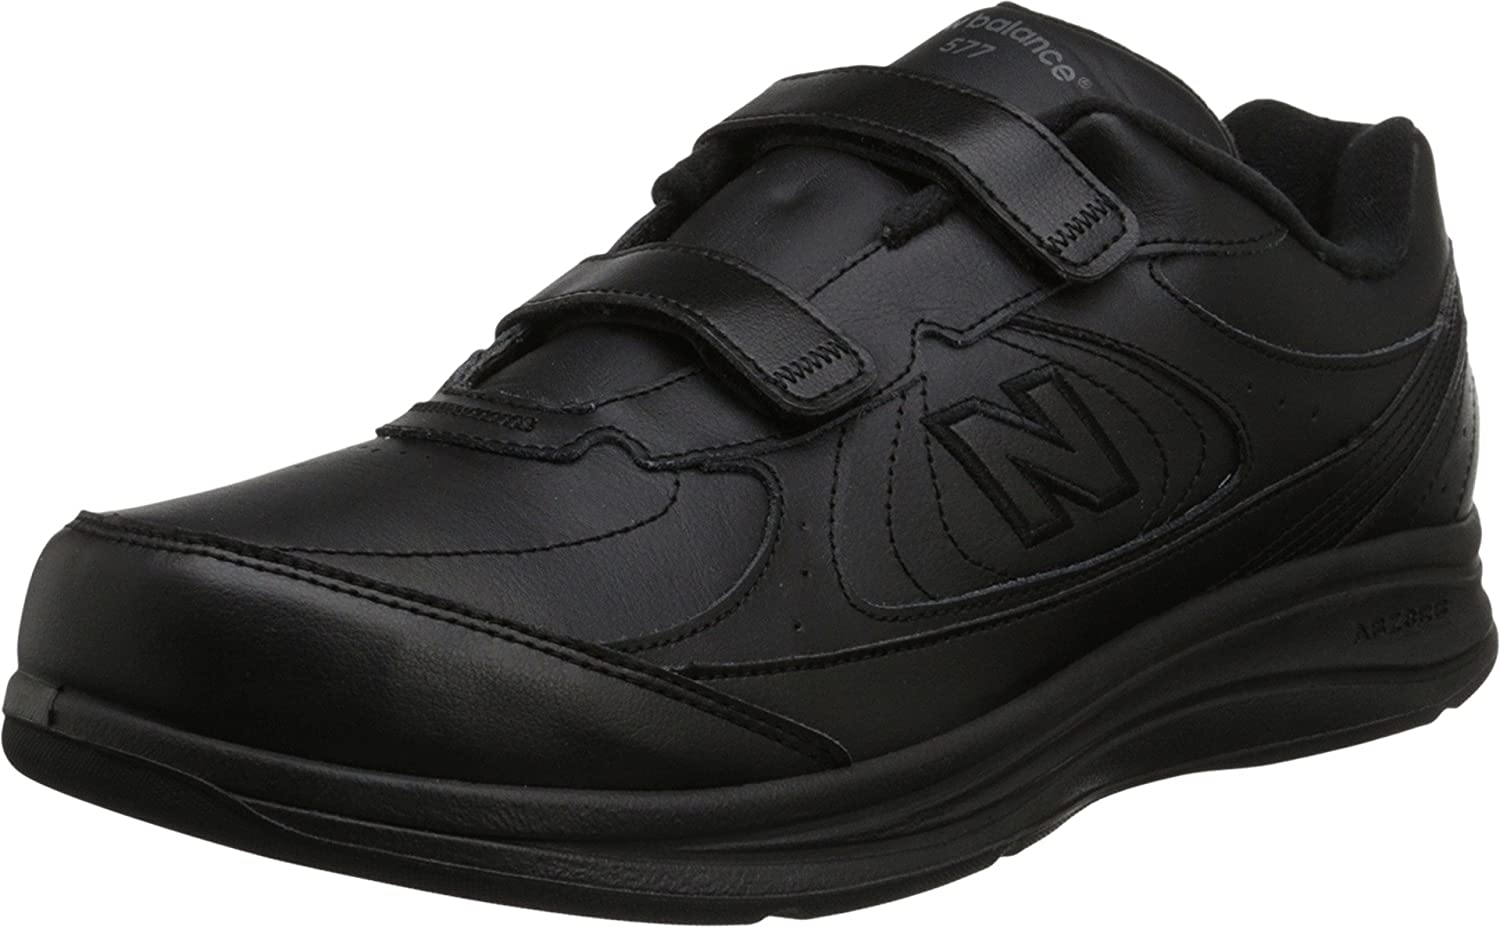 New Balance Inventory cleanup selling sale National uniform free shipping Men's 577 V1 Hook Shoe and Walking Loop